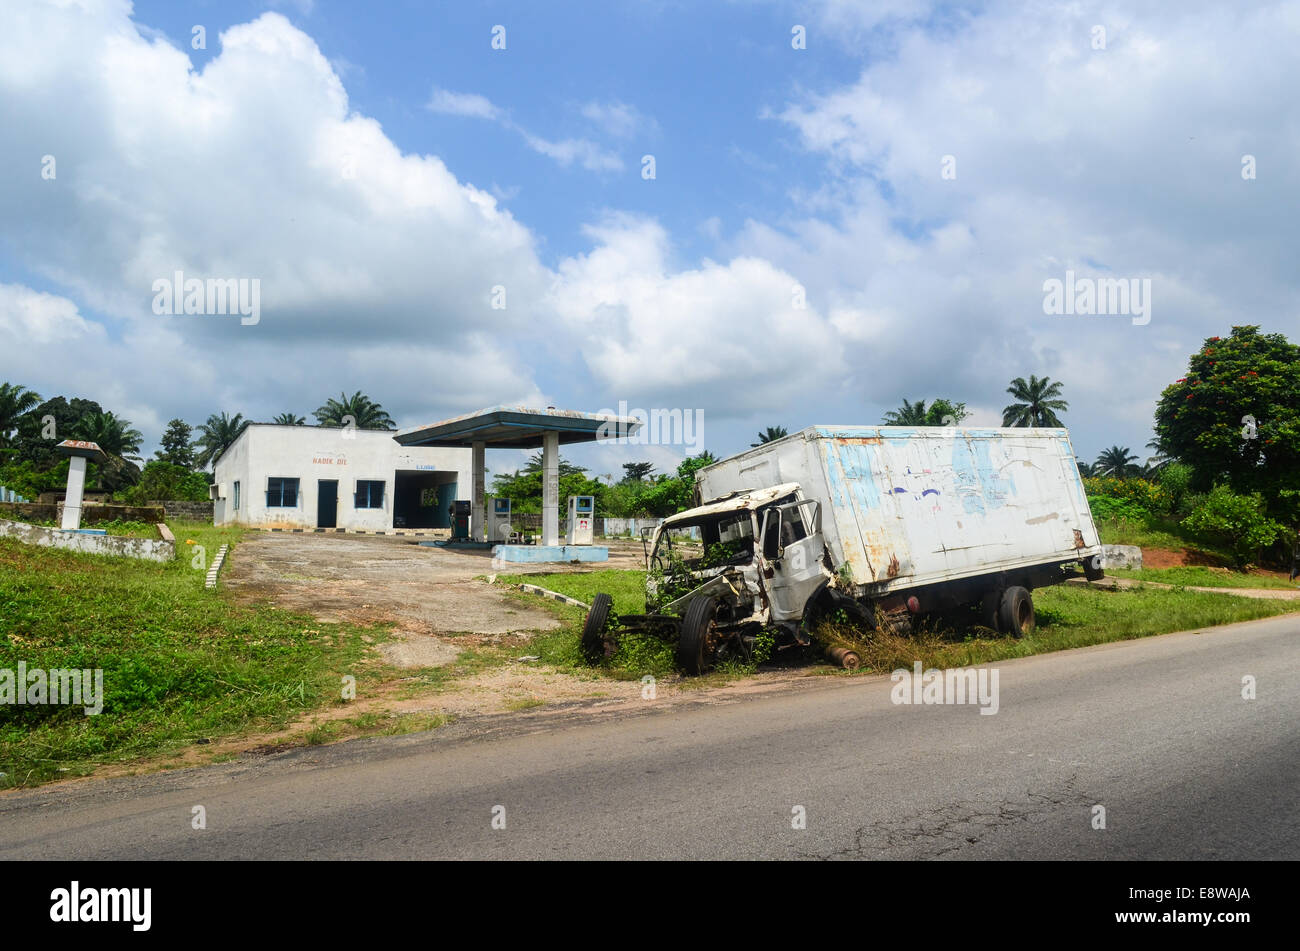 An abandoned gas station in south-west Nigeria, Ogun state, with a truck accident - Stock Image